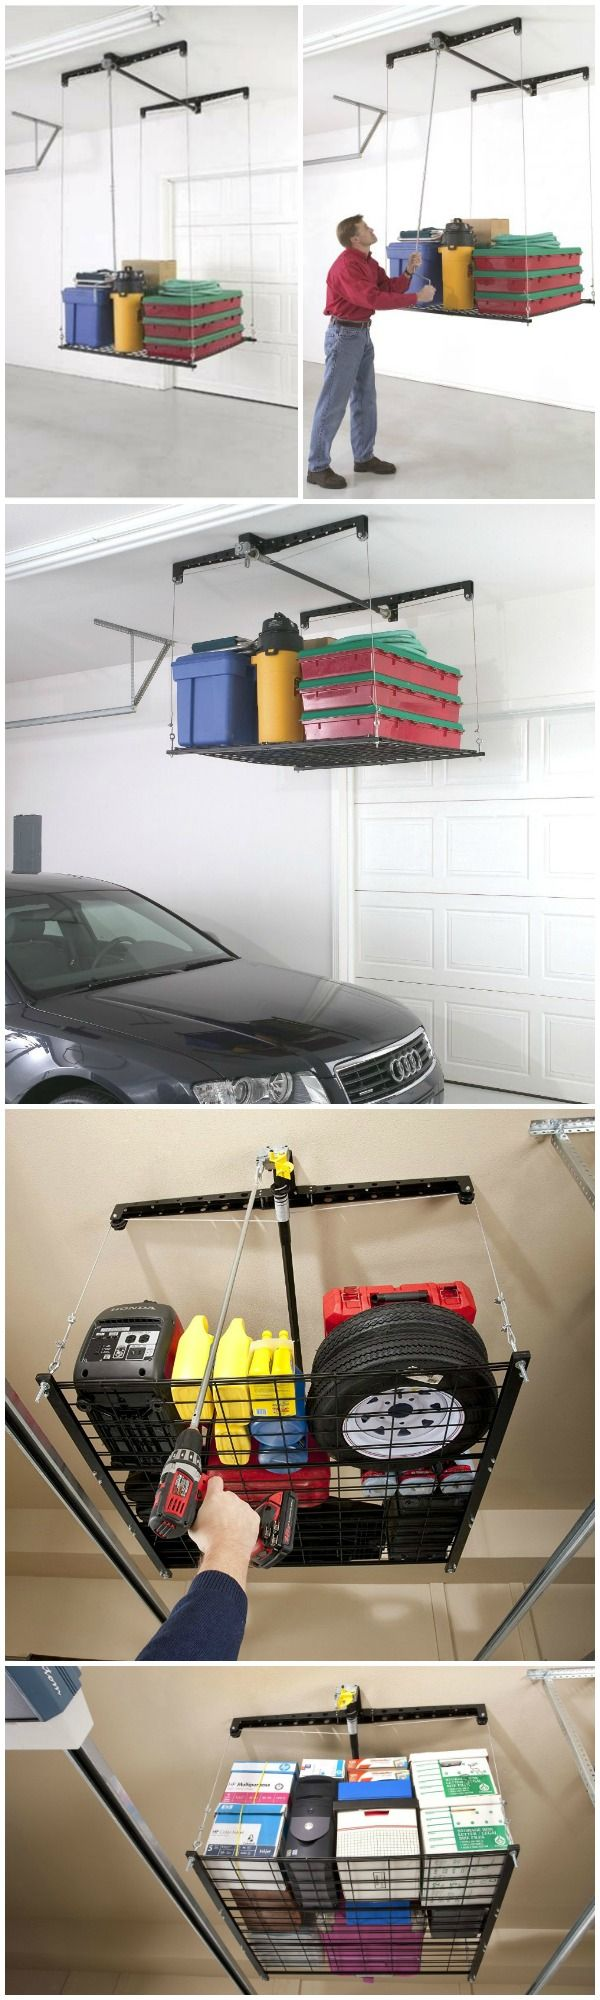 Racor HeavyLift Is The Ceiling Mounted Garage Elevator That Lets You Load  And Lift Storage Items Overhead, Out Of The Way, Without A Ladder Or Much  Effort.